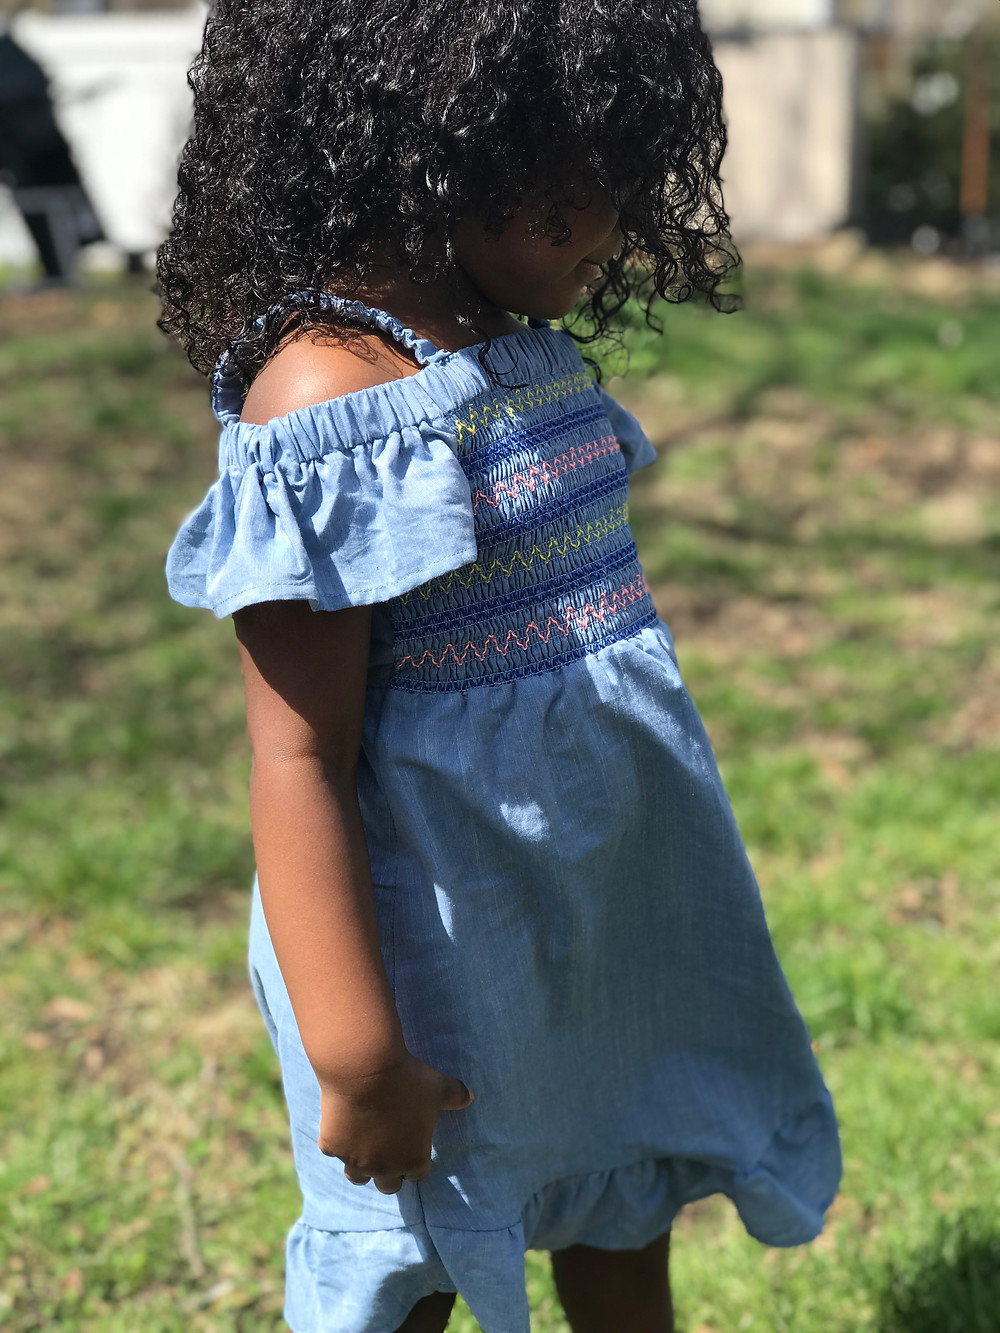 Our 4 Year Old's Hair Care Routine   Kid's Hair Care Routine   4 year old hairstyles girl   4 year old hairstyles black girl   hair care tips for curly hair   hair care tips